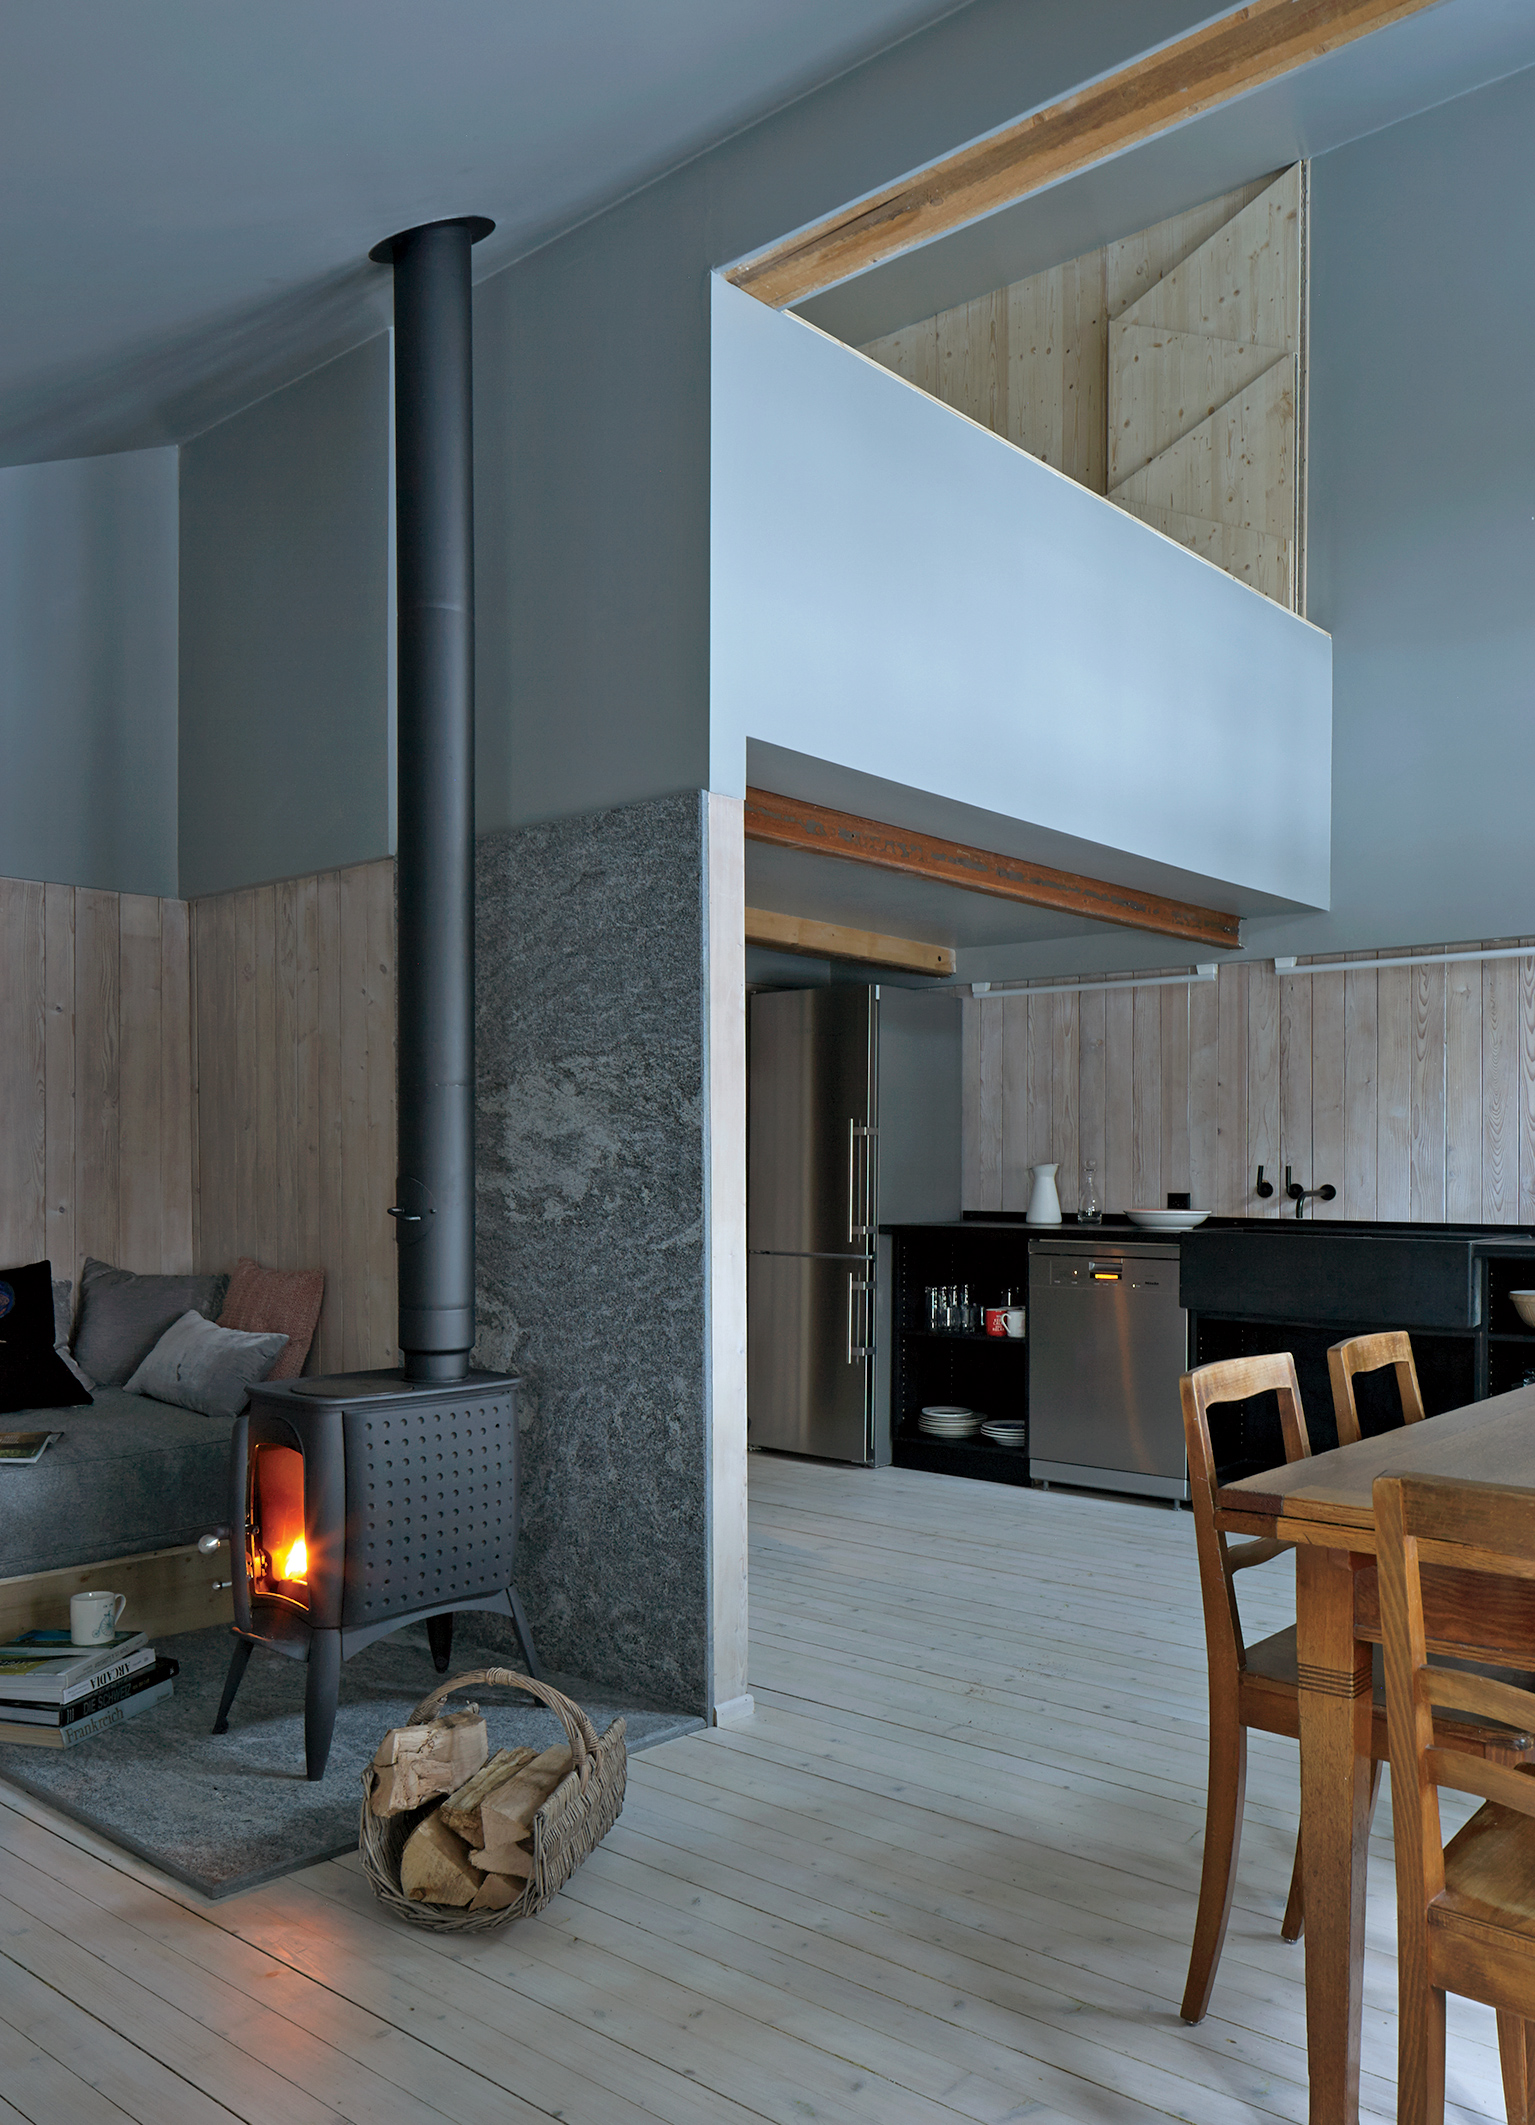 Swiss family getaway small space renovation with stove in main room